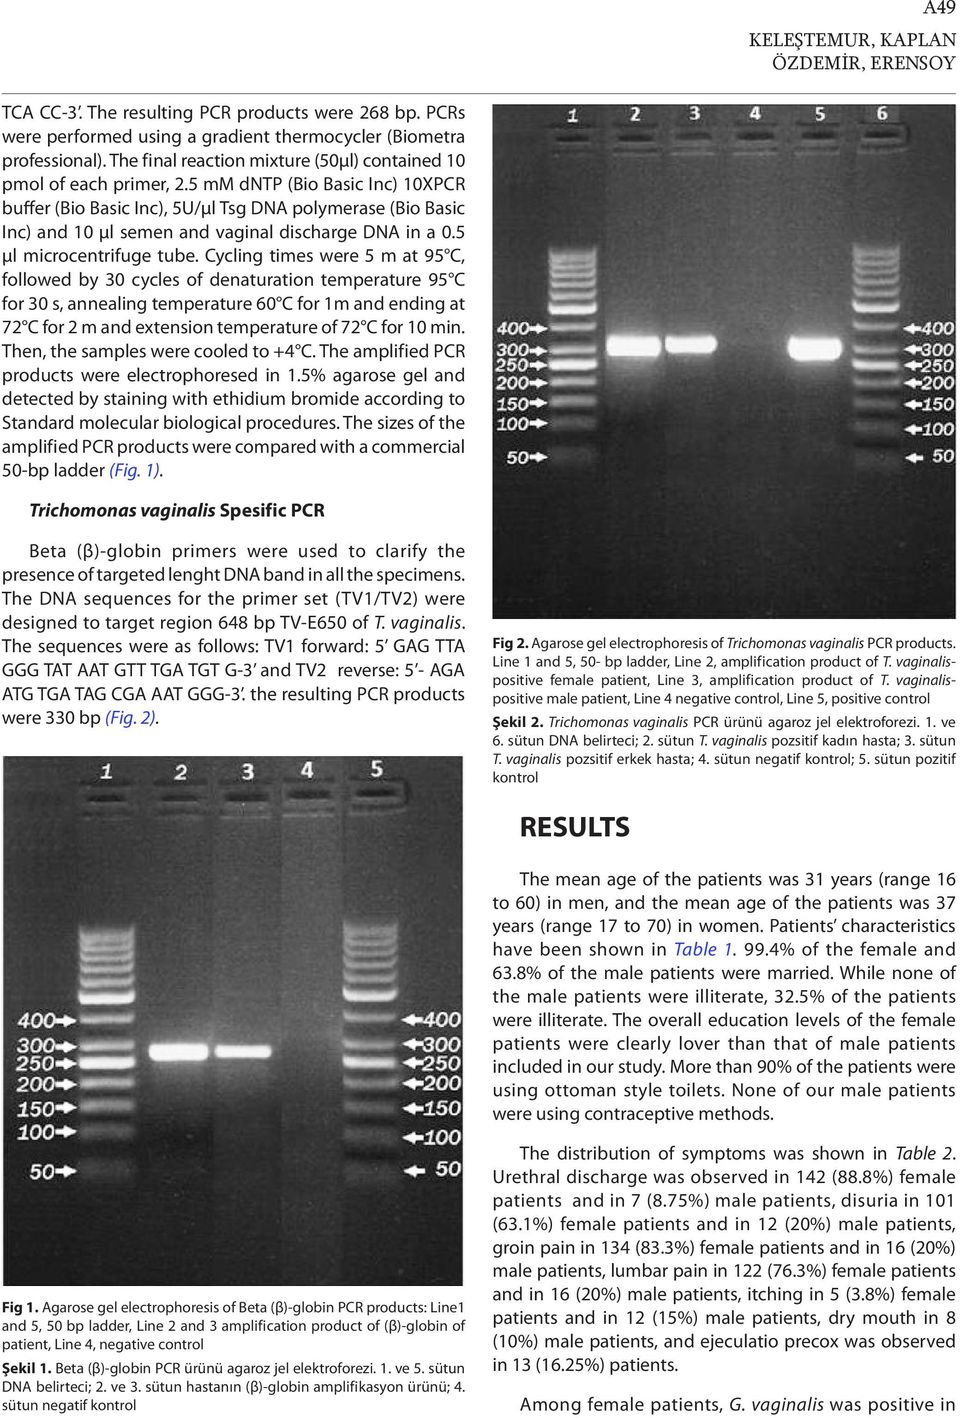 5 mm dntp (Bio Basic Inc) 10XPCR buffer (Bio Basic Inc), 5U/µl Tsg DNA polymerase (Bio Basic Inc) and 10 µl semen and vaginal discharge DNA in a 0.5 µl microcentrifuge tube.